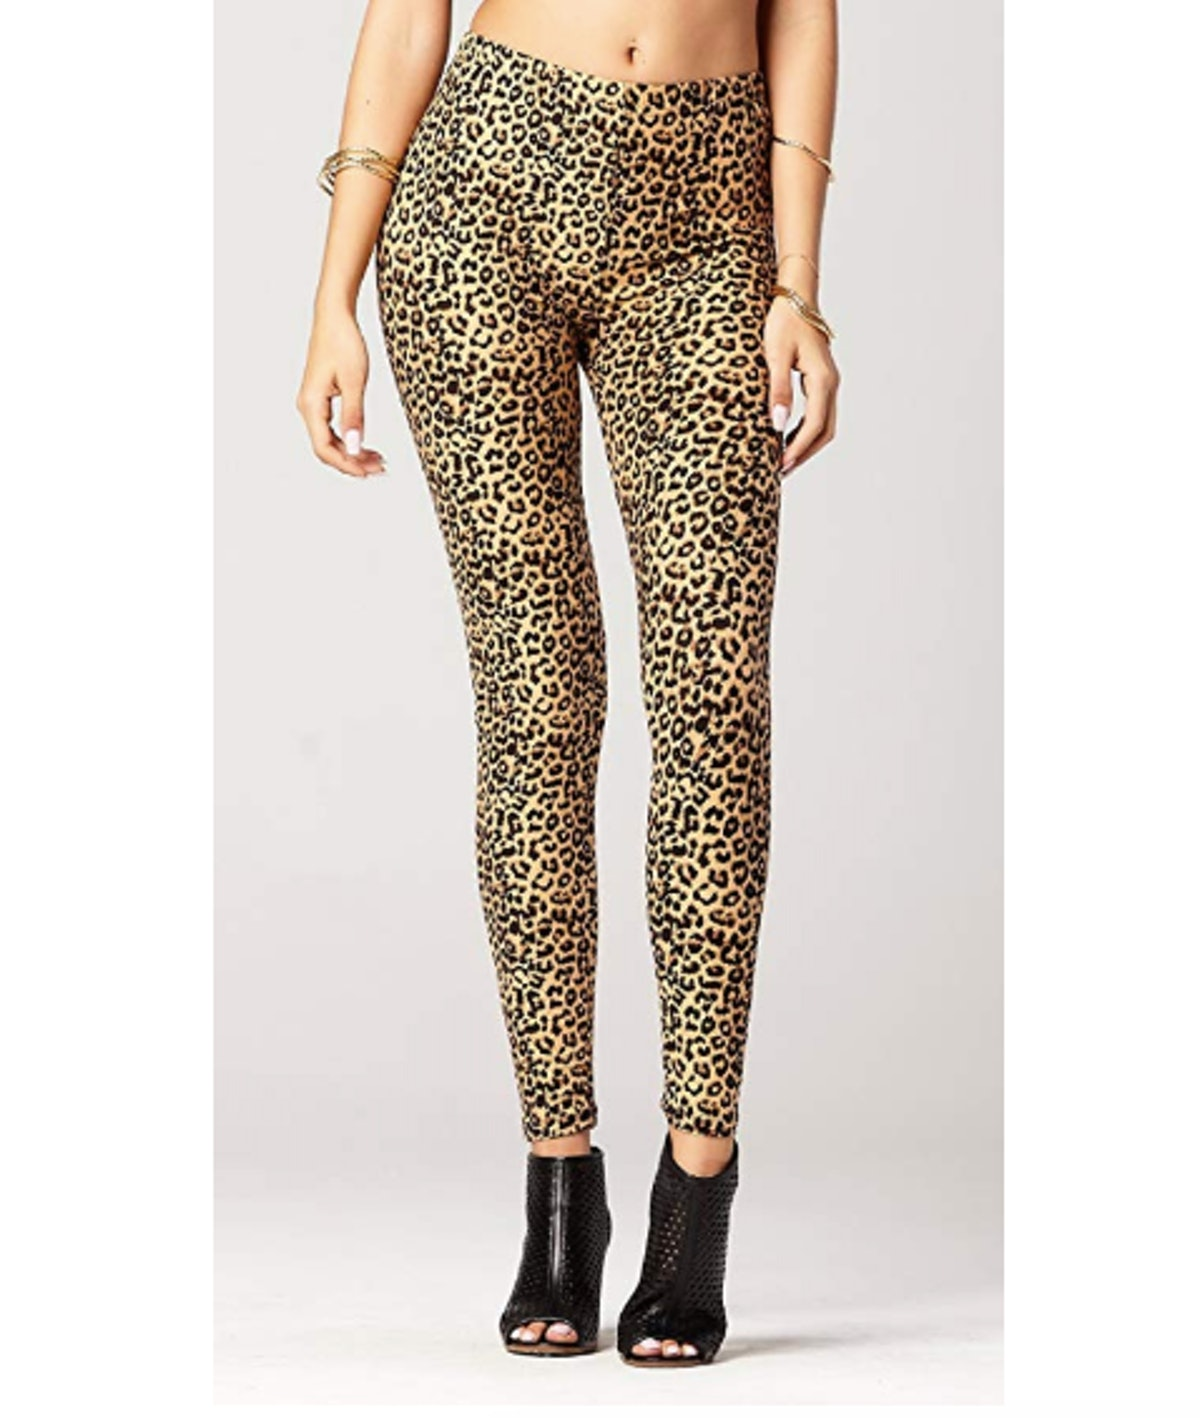 Conceited High Waisted Leggings